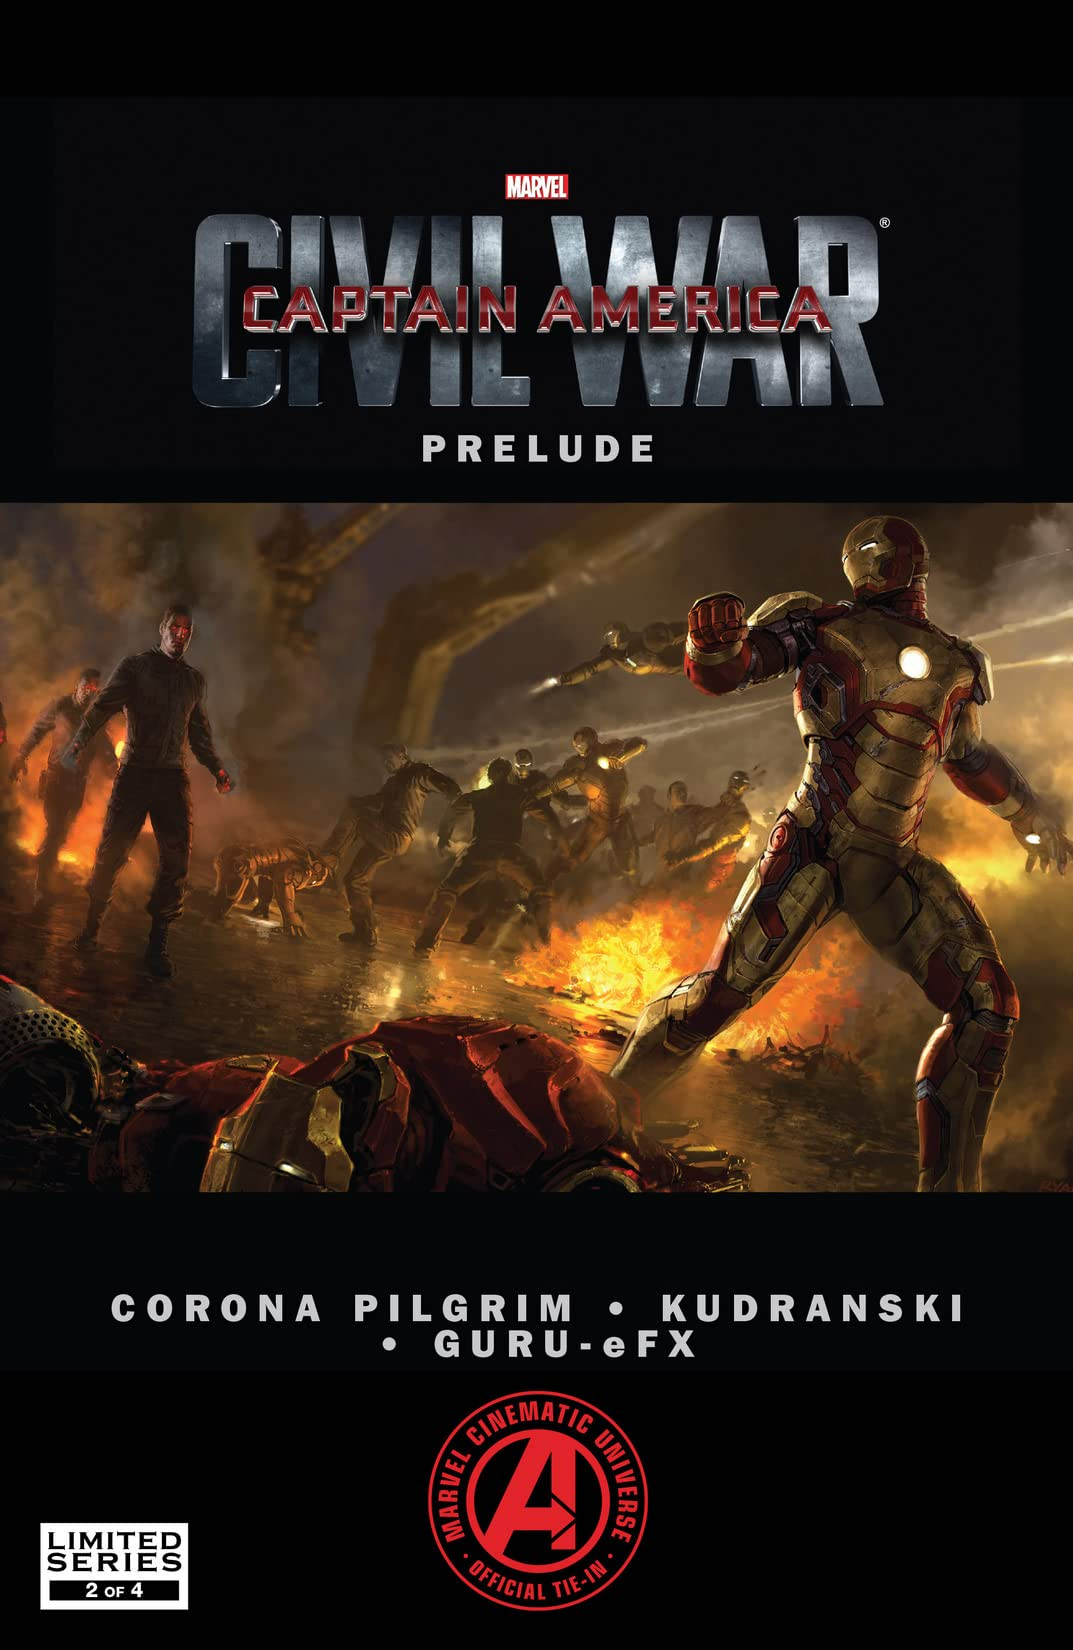 Marvel's Captain America: Civil War Prelude (2015) #2